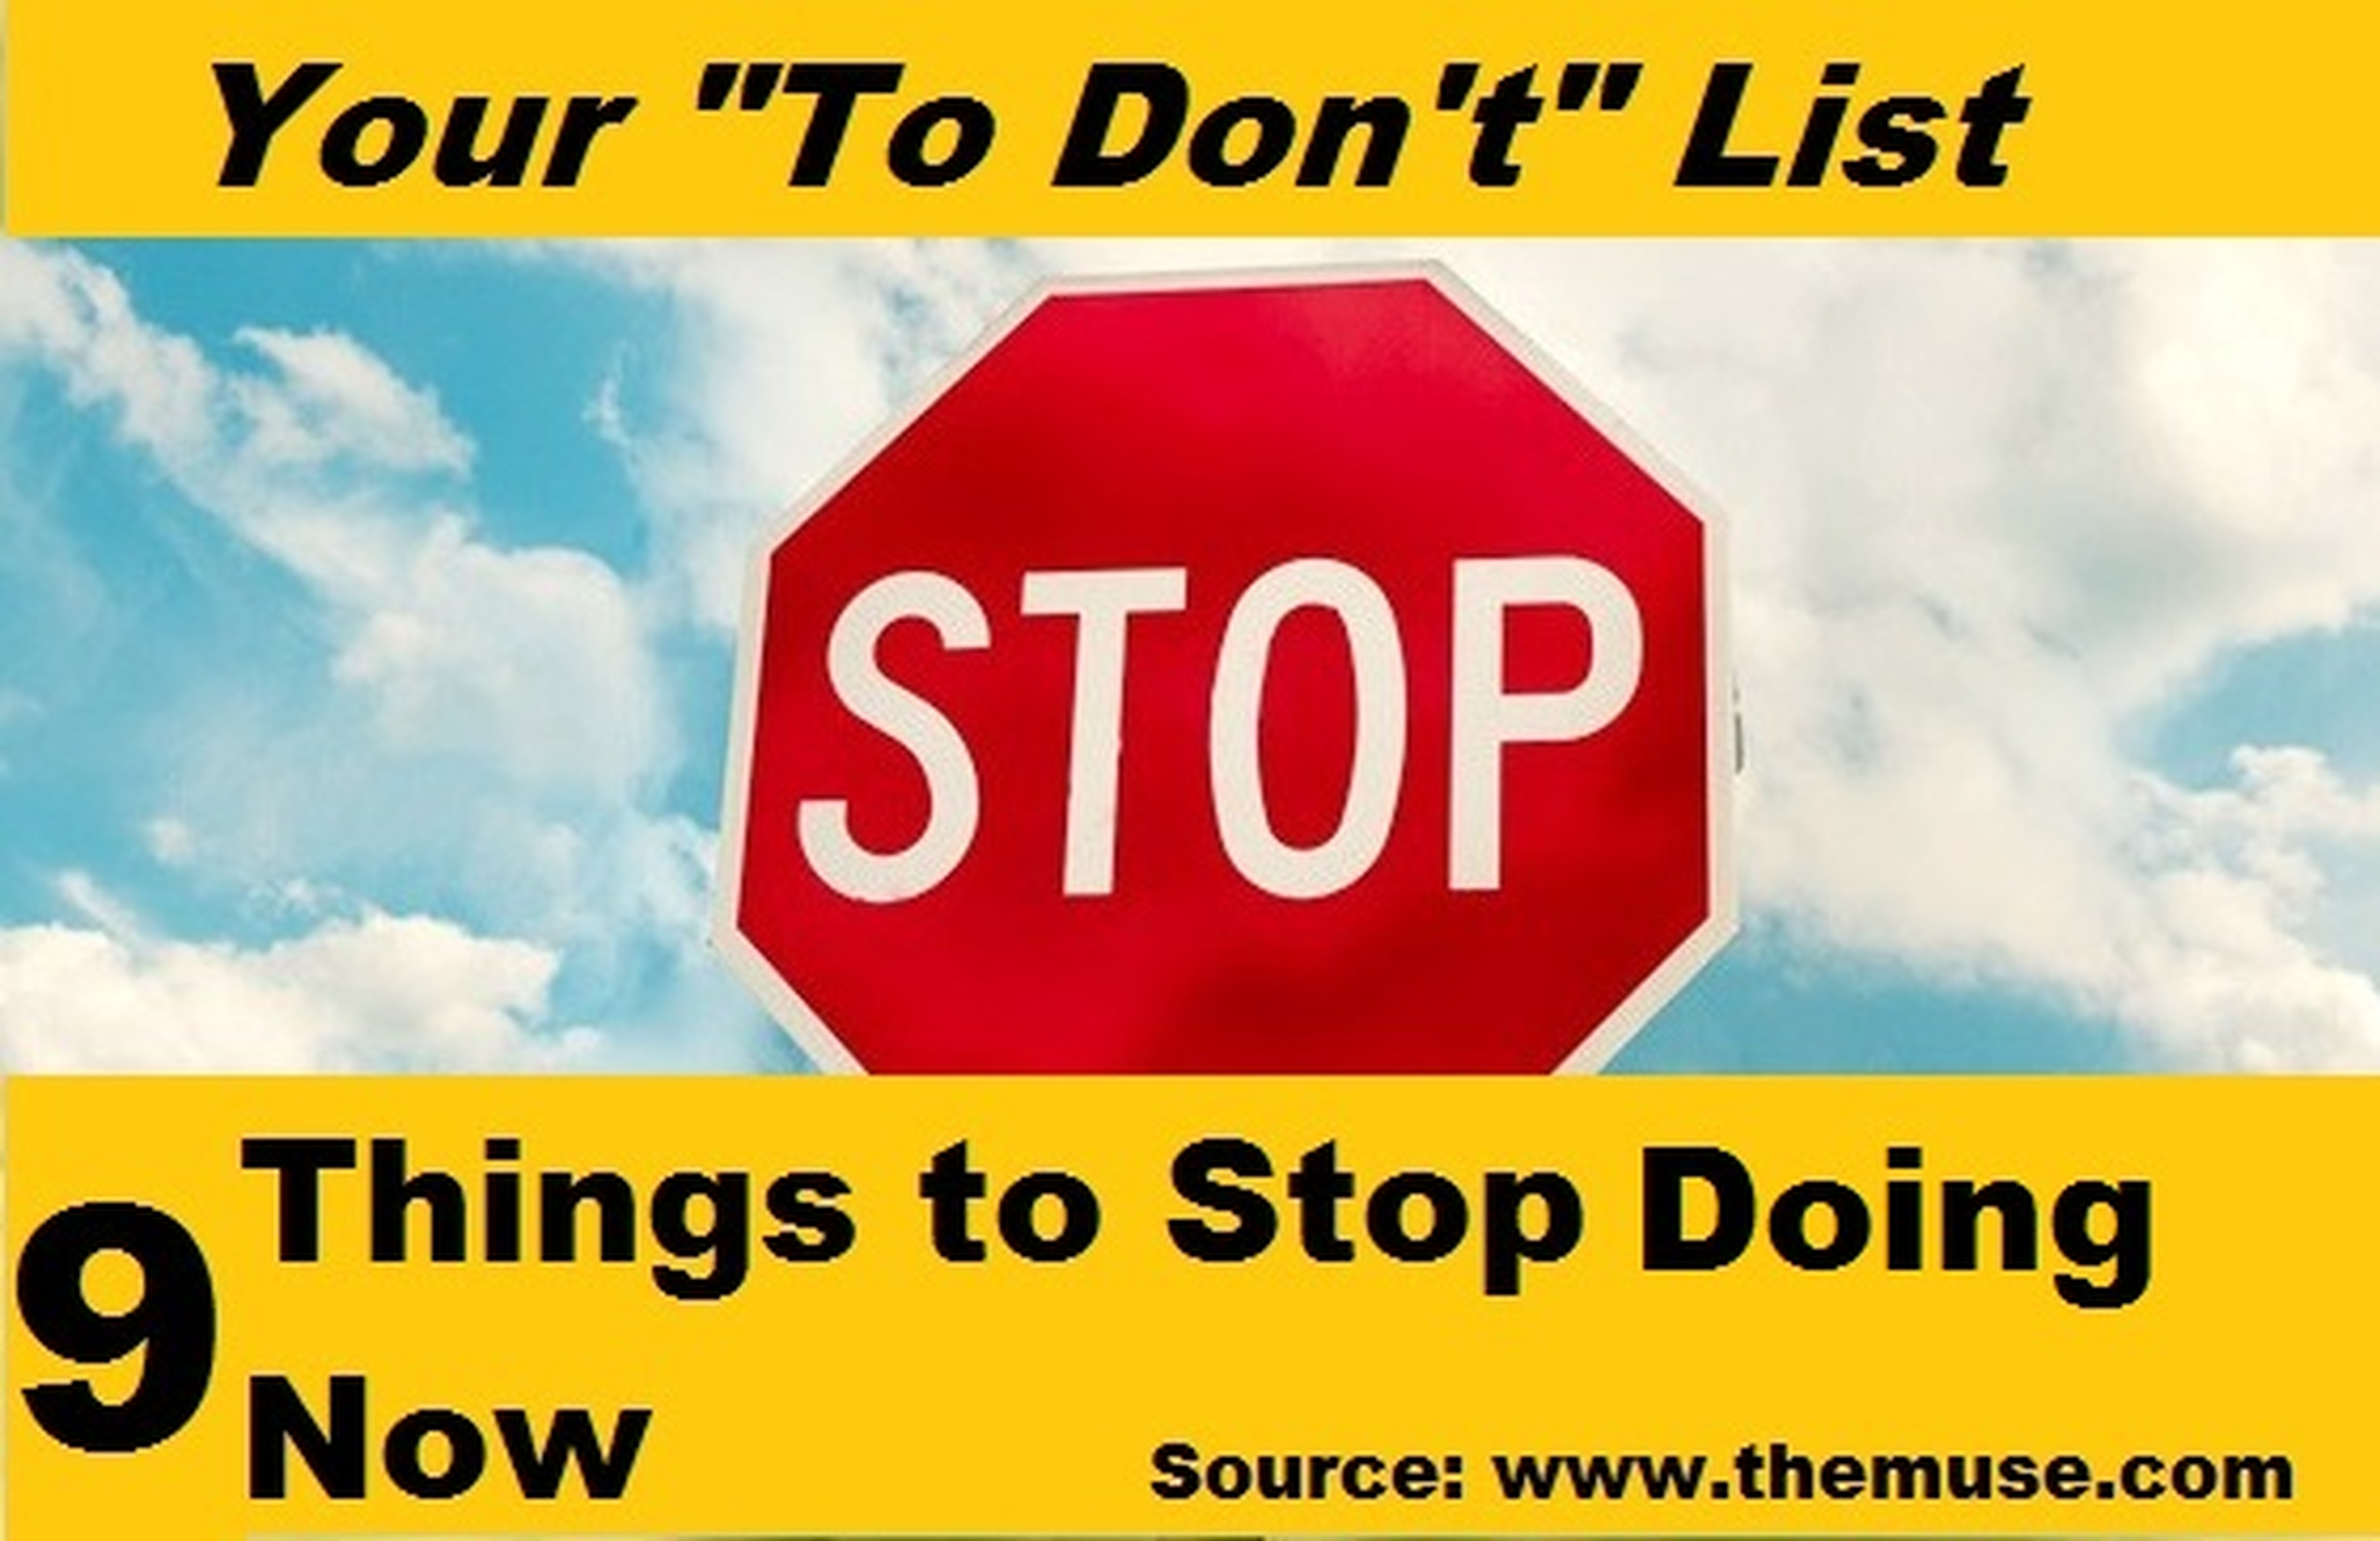 9 Things to Stop Doing Now